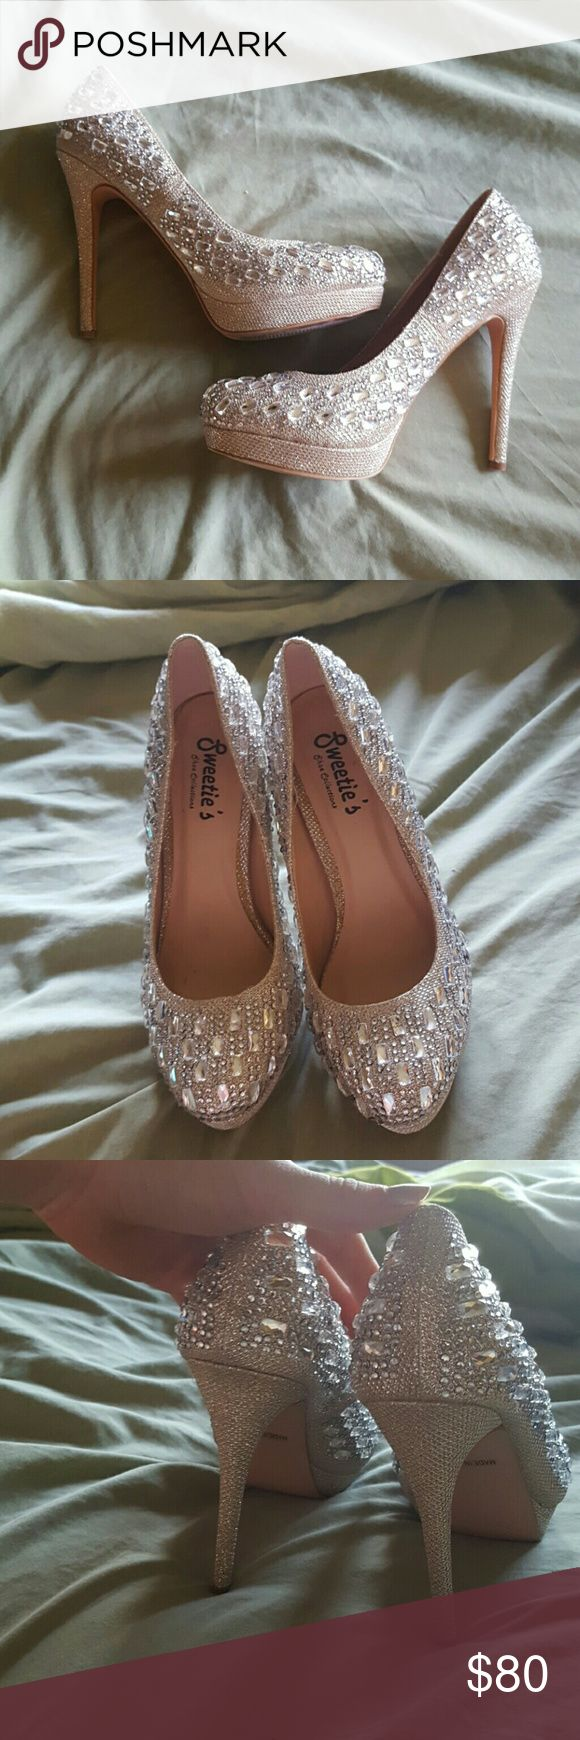 Bling heels Beautiful Cinderella like nude bling heels. Only worn once. Absolutely stunning. Size 8. Bought for 120. I can wear from a 6.5 to 7.5 but these fit like a glove even though they are an 8. Needs a new home. Price negotiable and open to trades for makeup! Shoes Heels